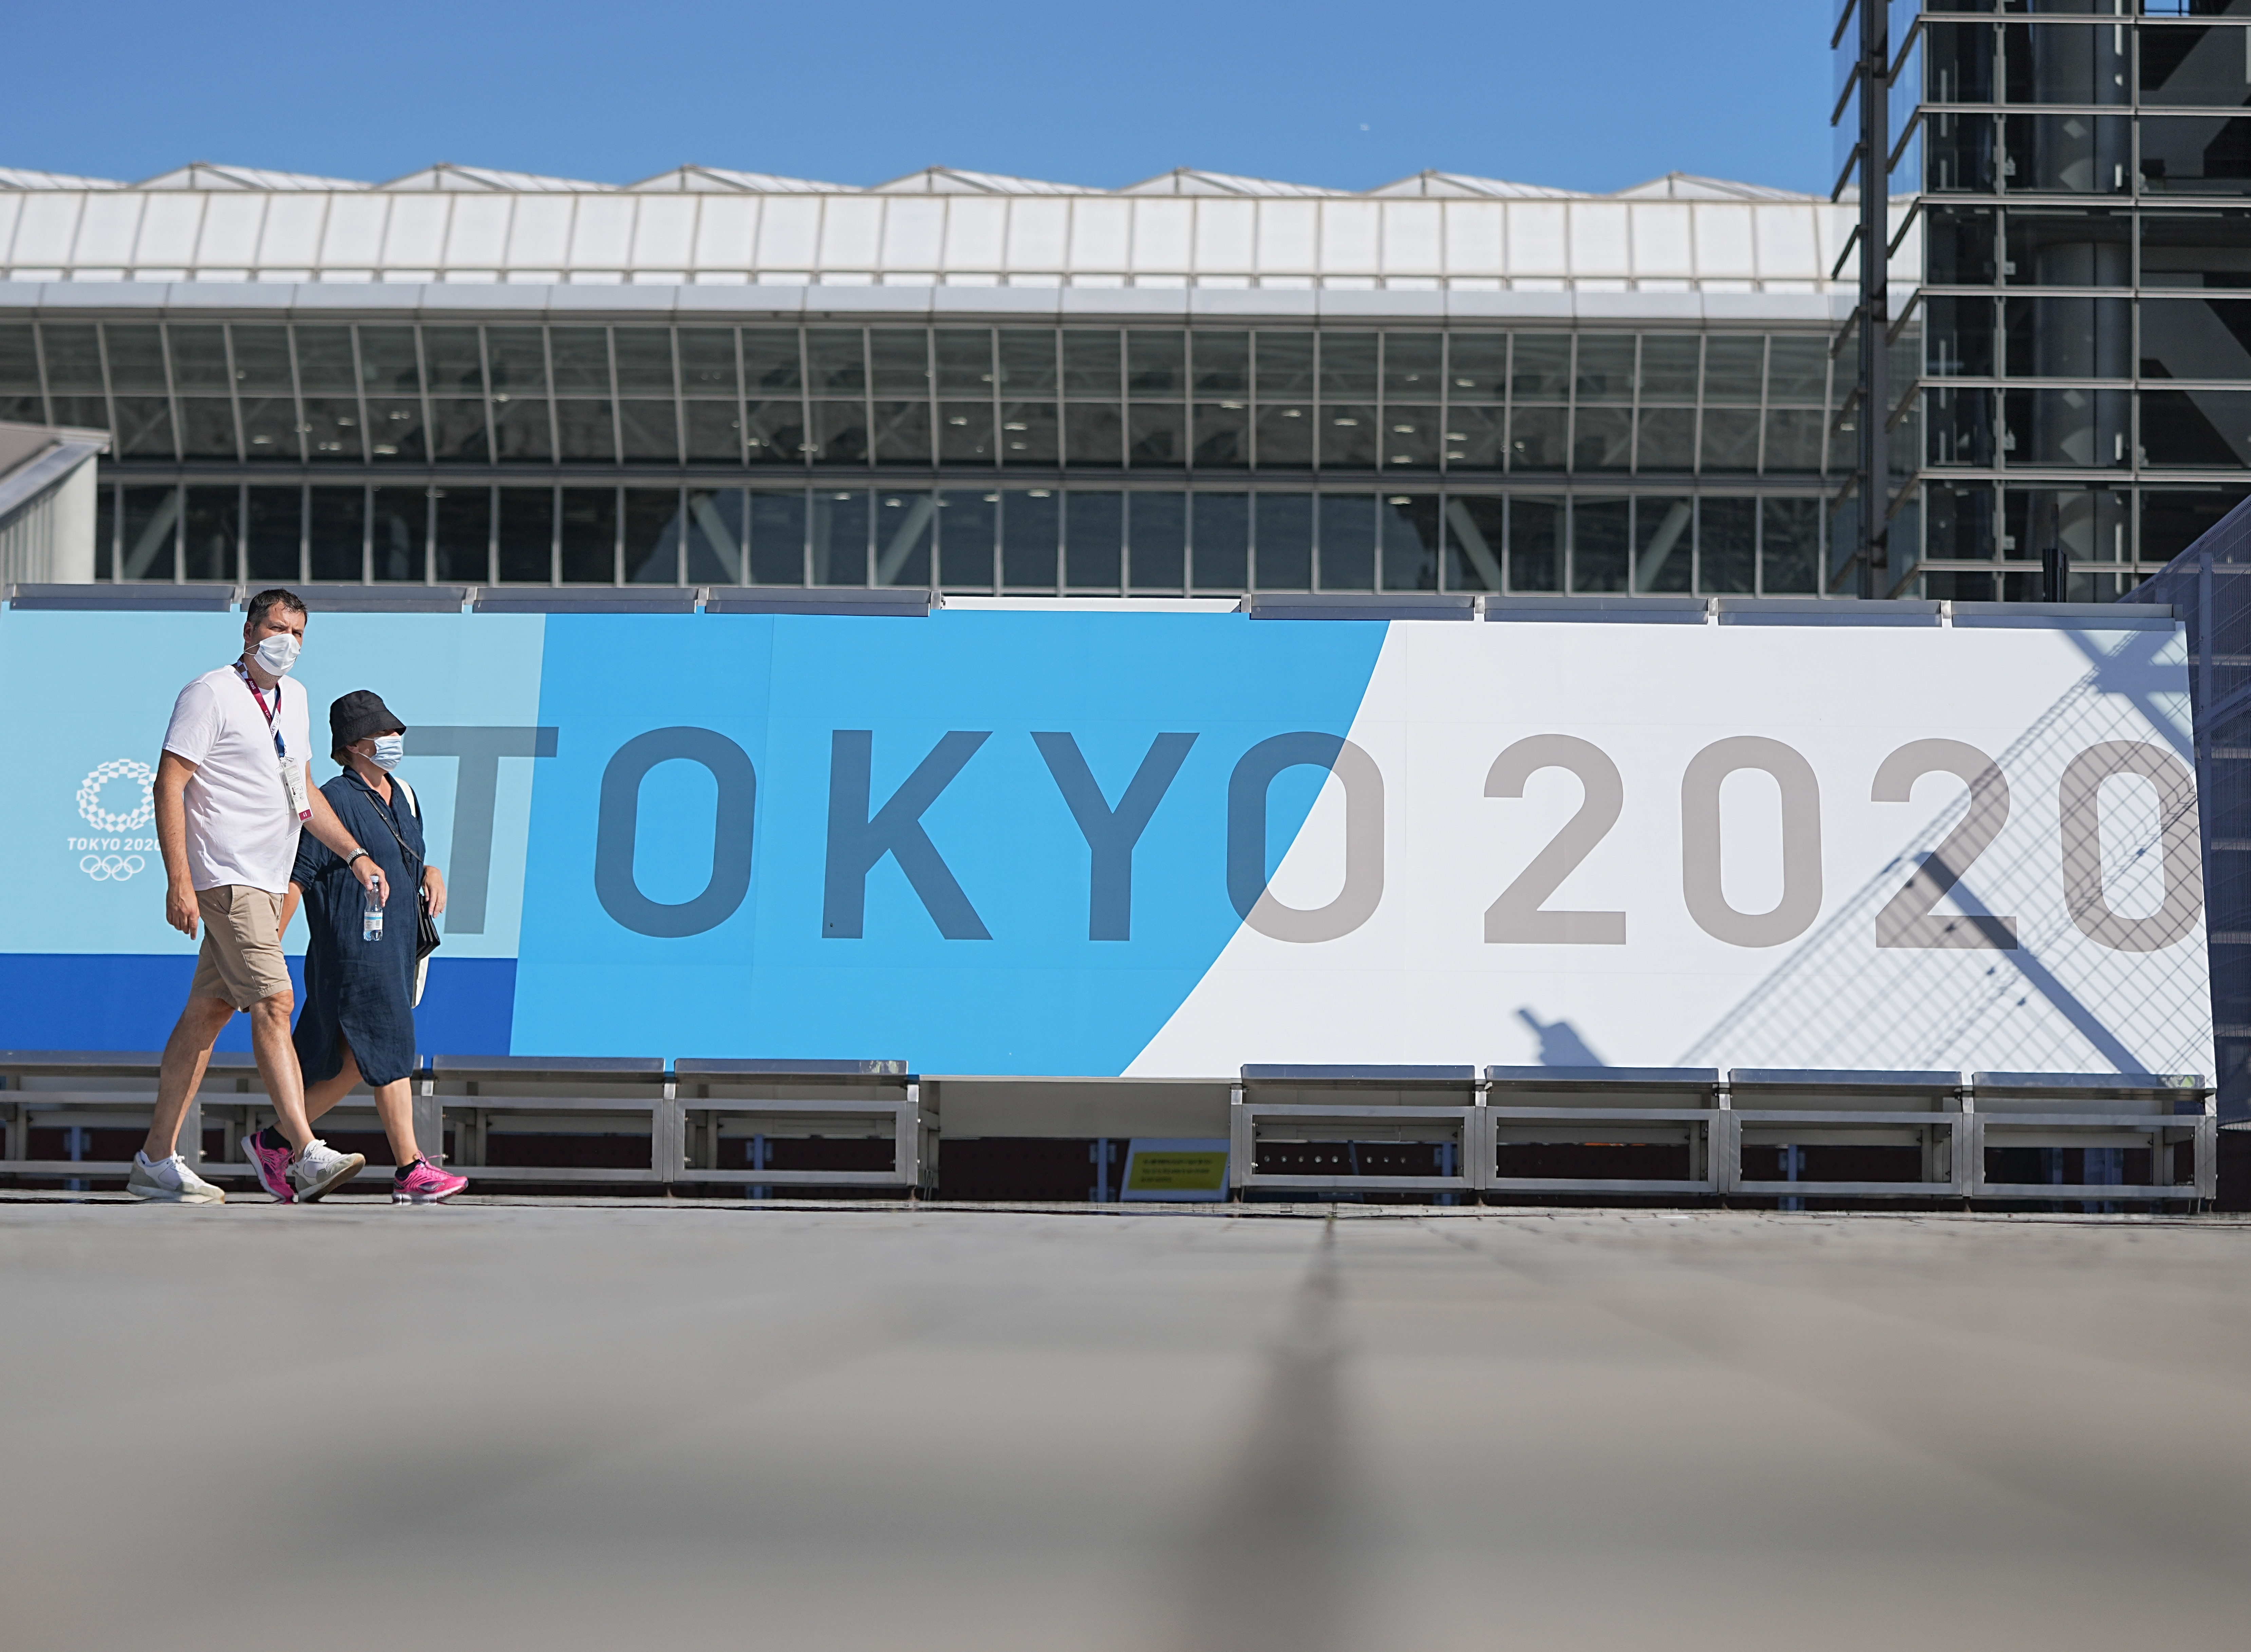 Before the Tokyo Olympics